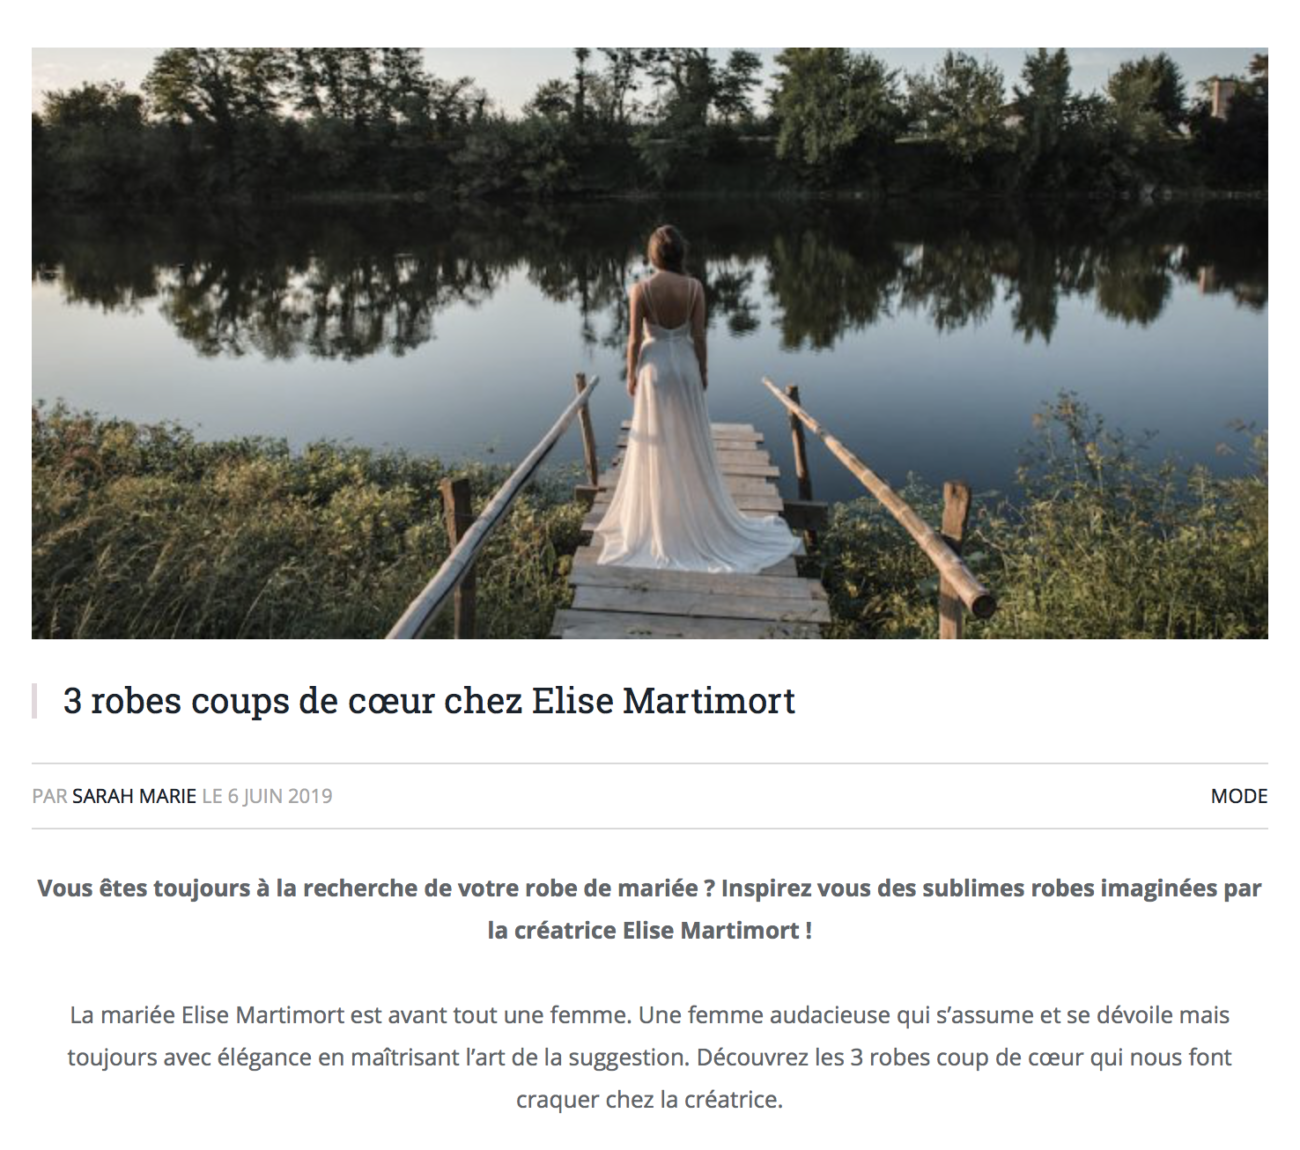 3 robes préférés elise Martimort wedding magazine